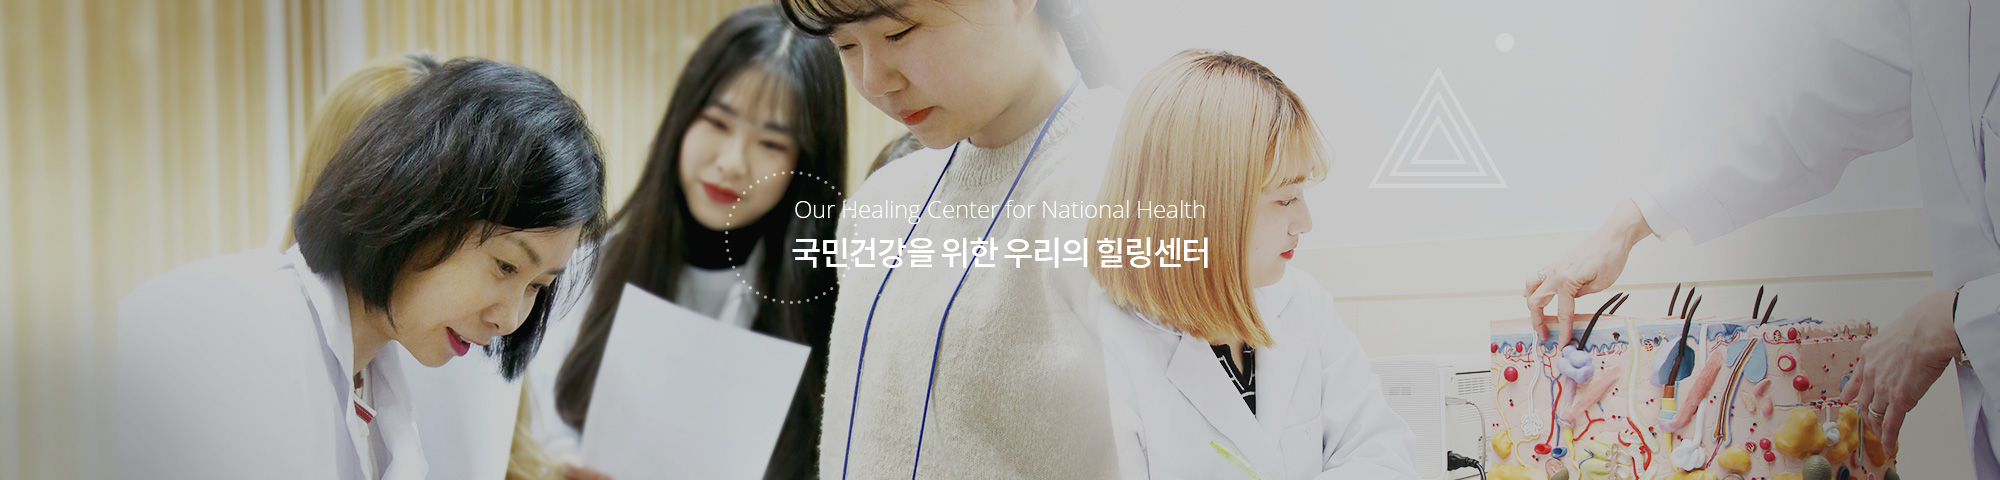 Our Healing Center for National Health 국민건강을 위한 우리의 힐링센터